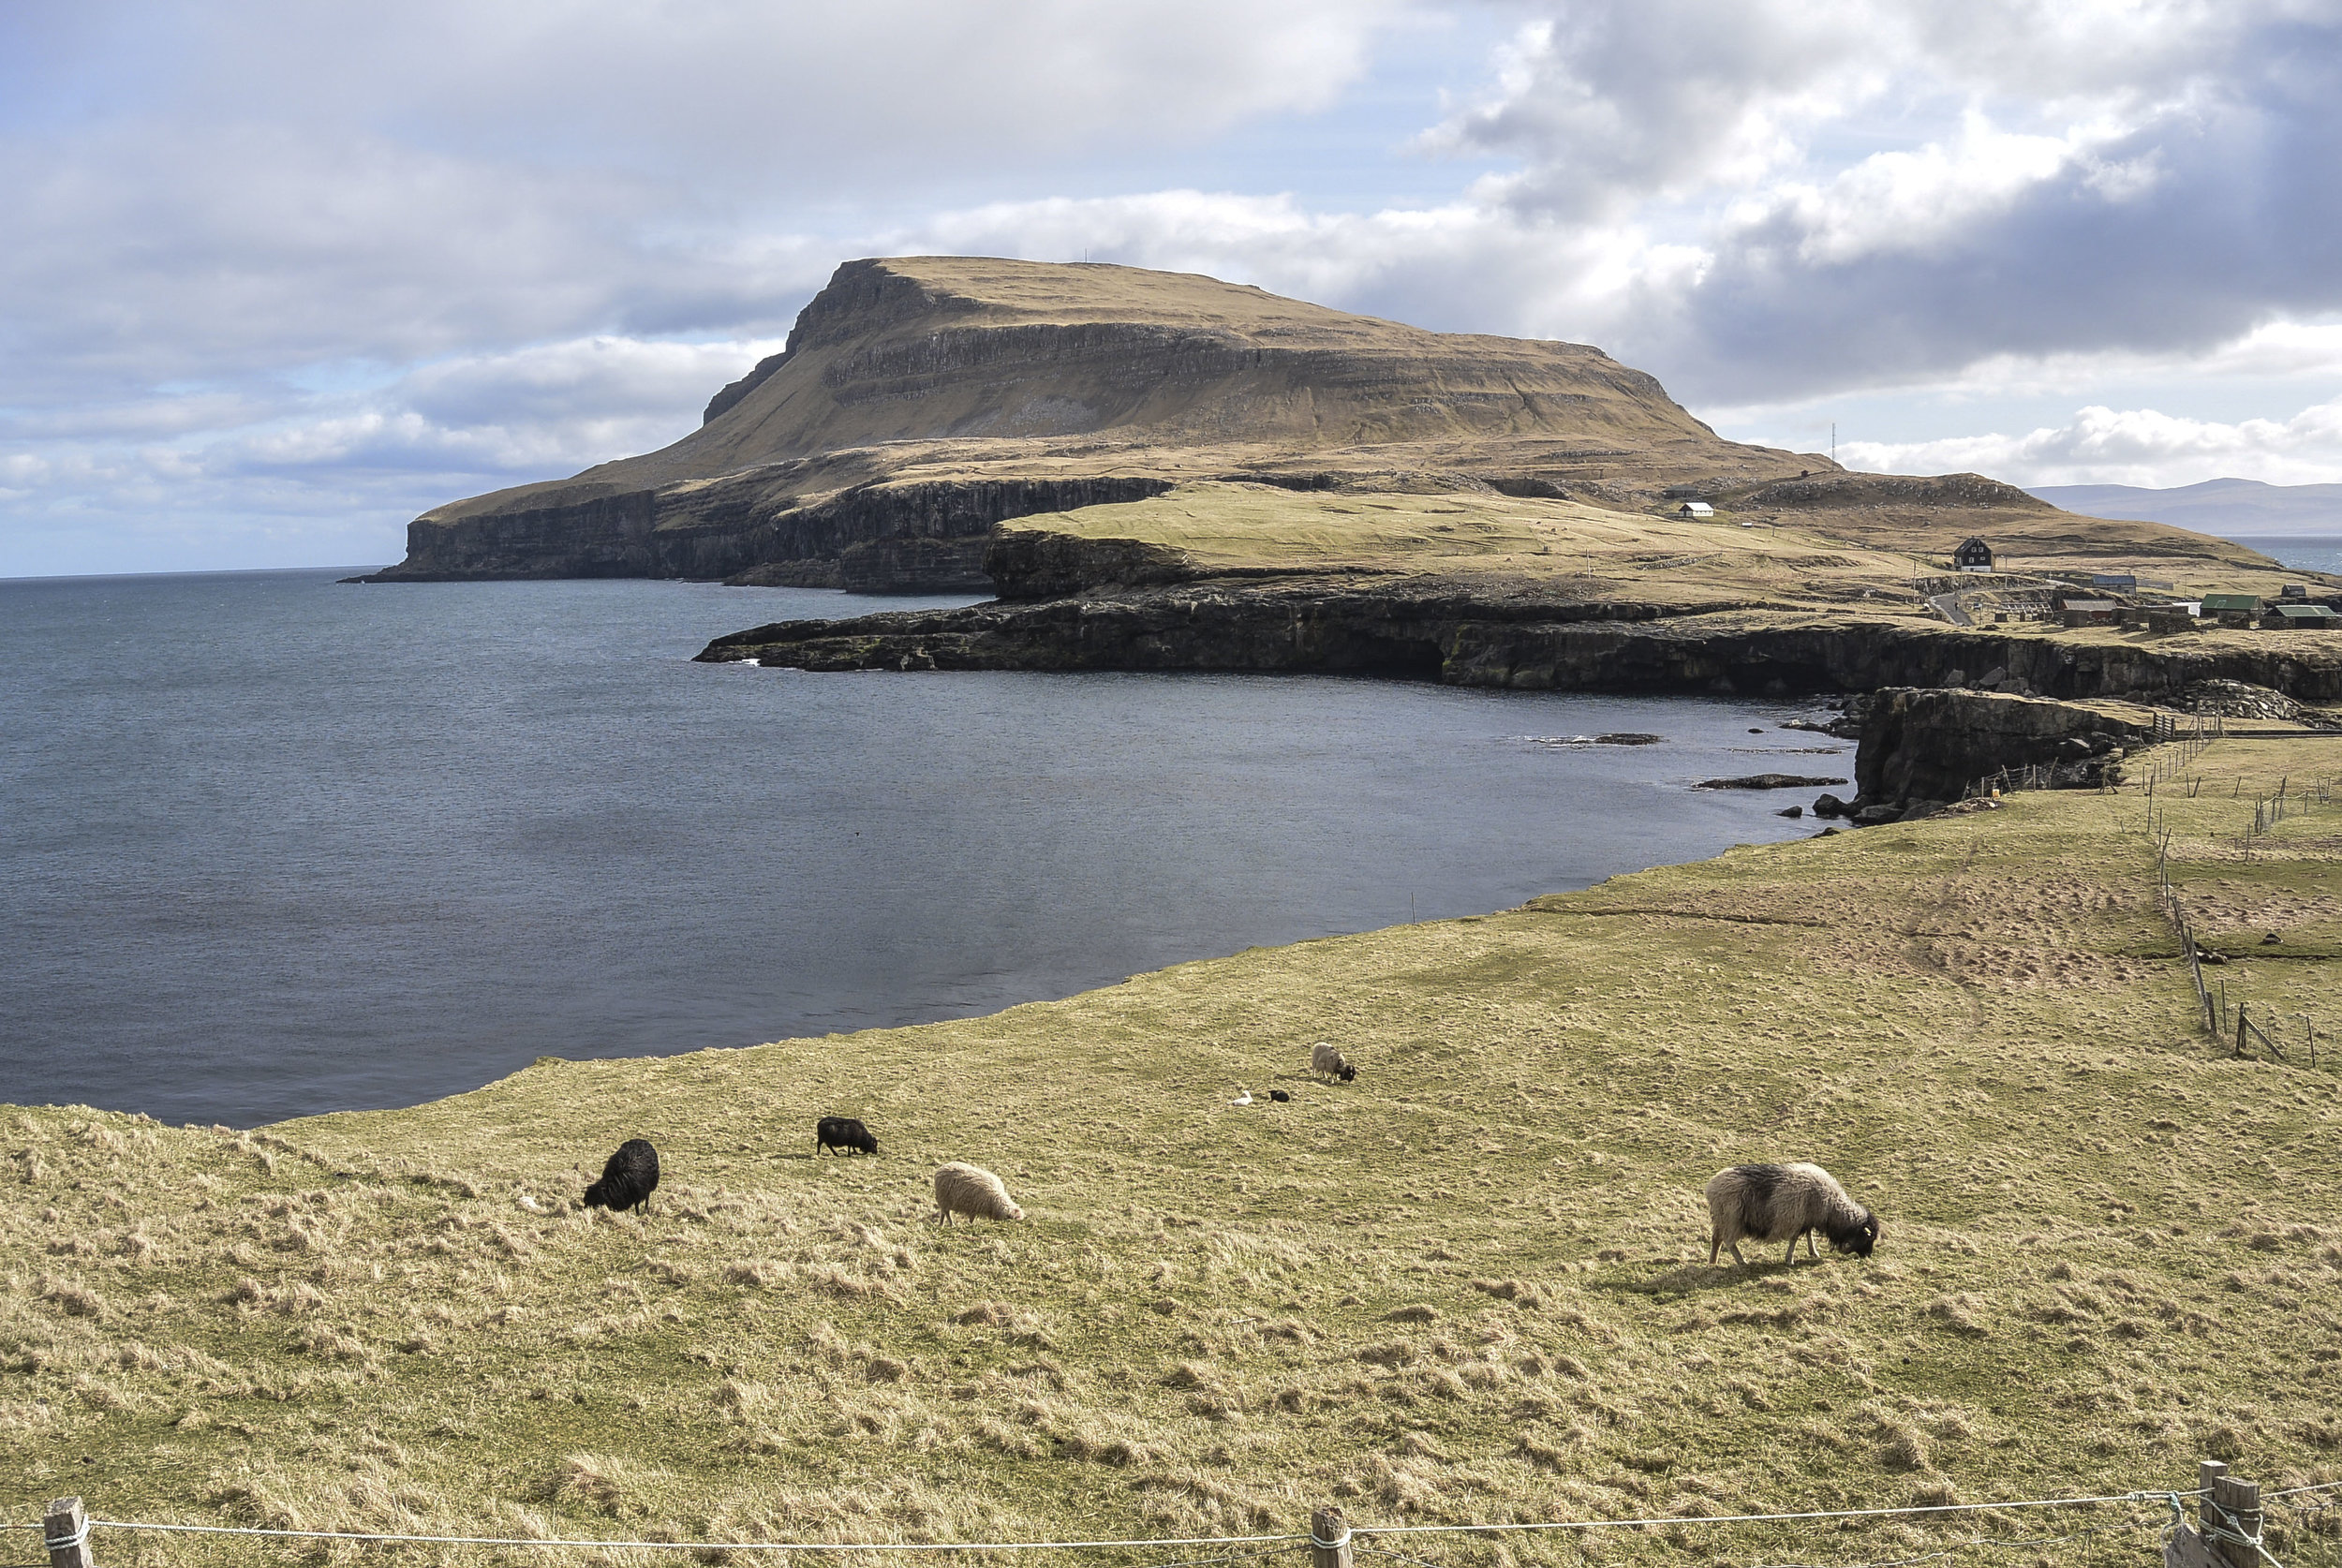 Sheep graze on the far end of the island of Nolsay, in the Faroe Islands, in April, 2016. The island is reachable by ferry from Torshavn. (Megan Perra)